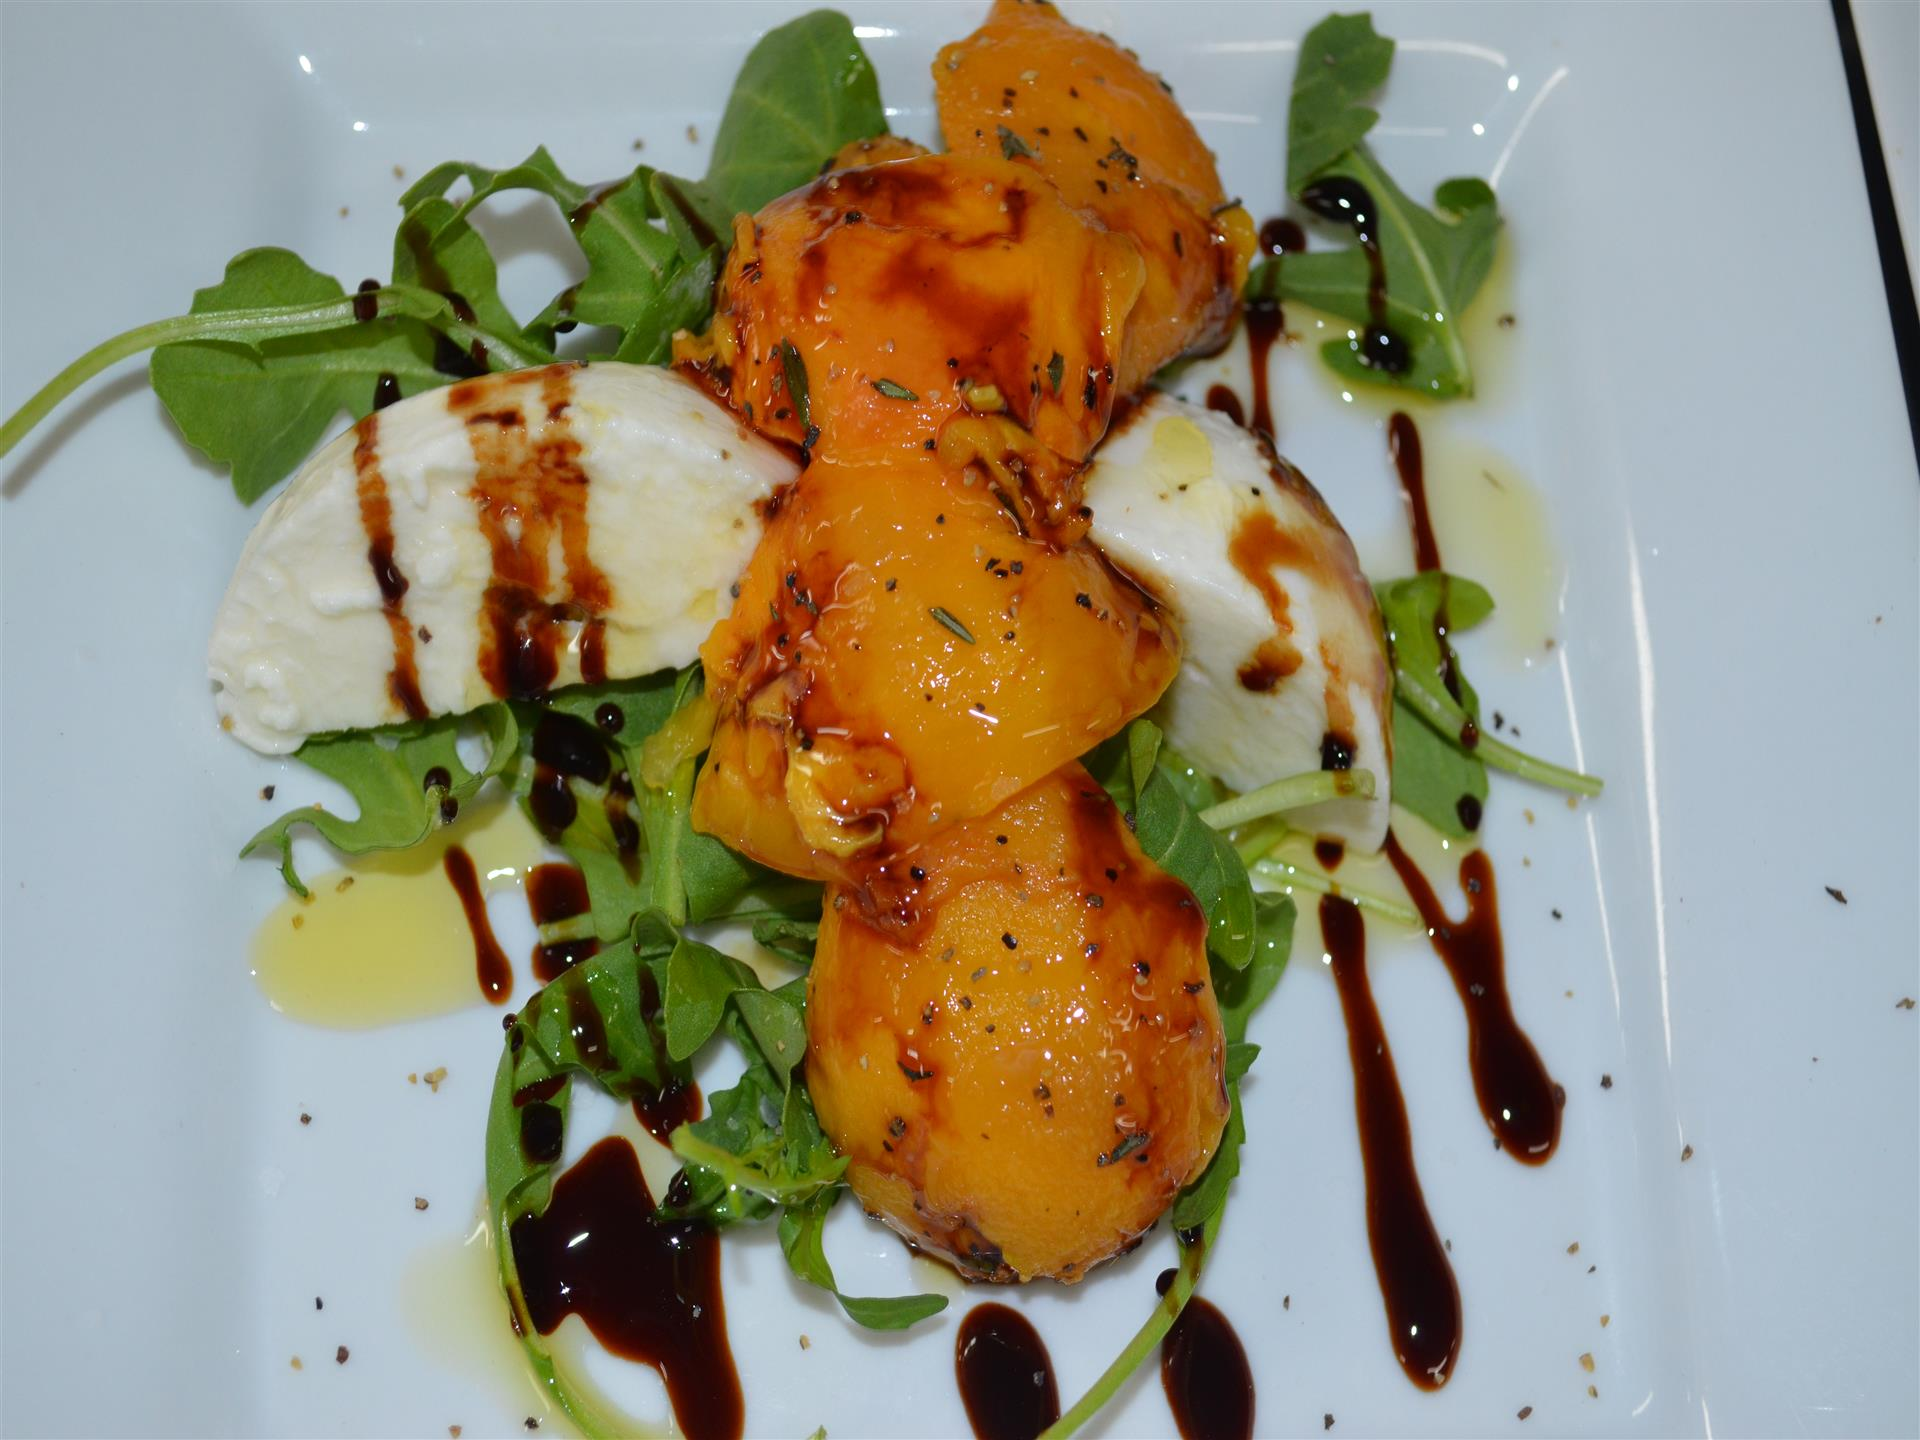 Braised peach served with fresh greens, cream cheese and balsamico